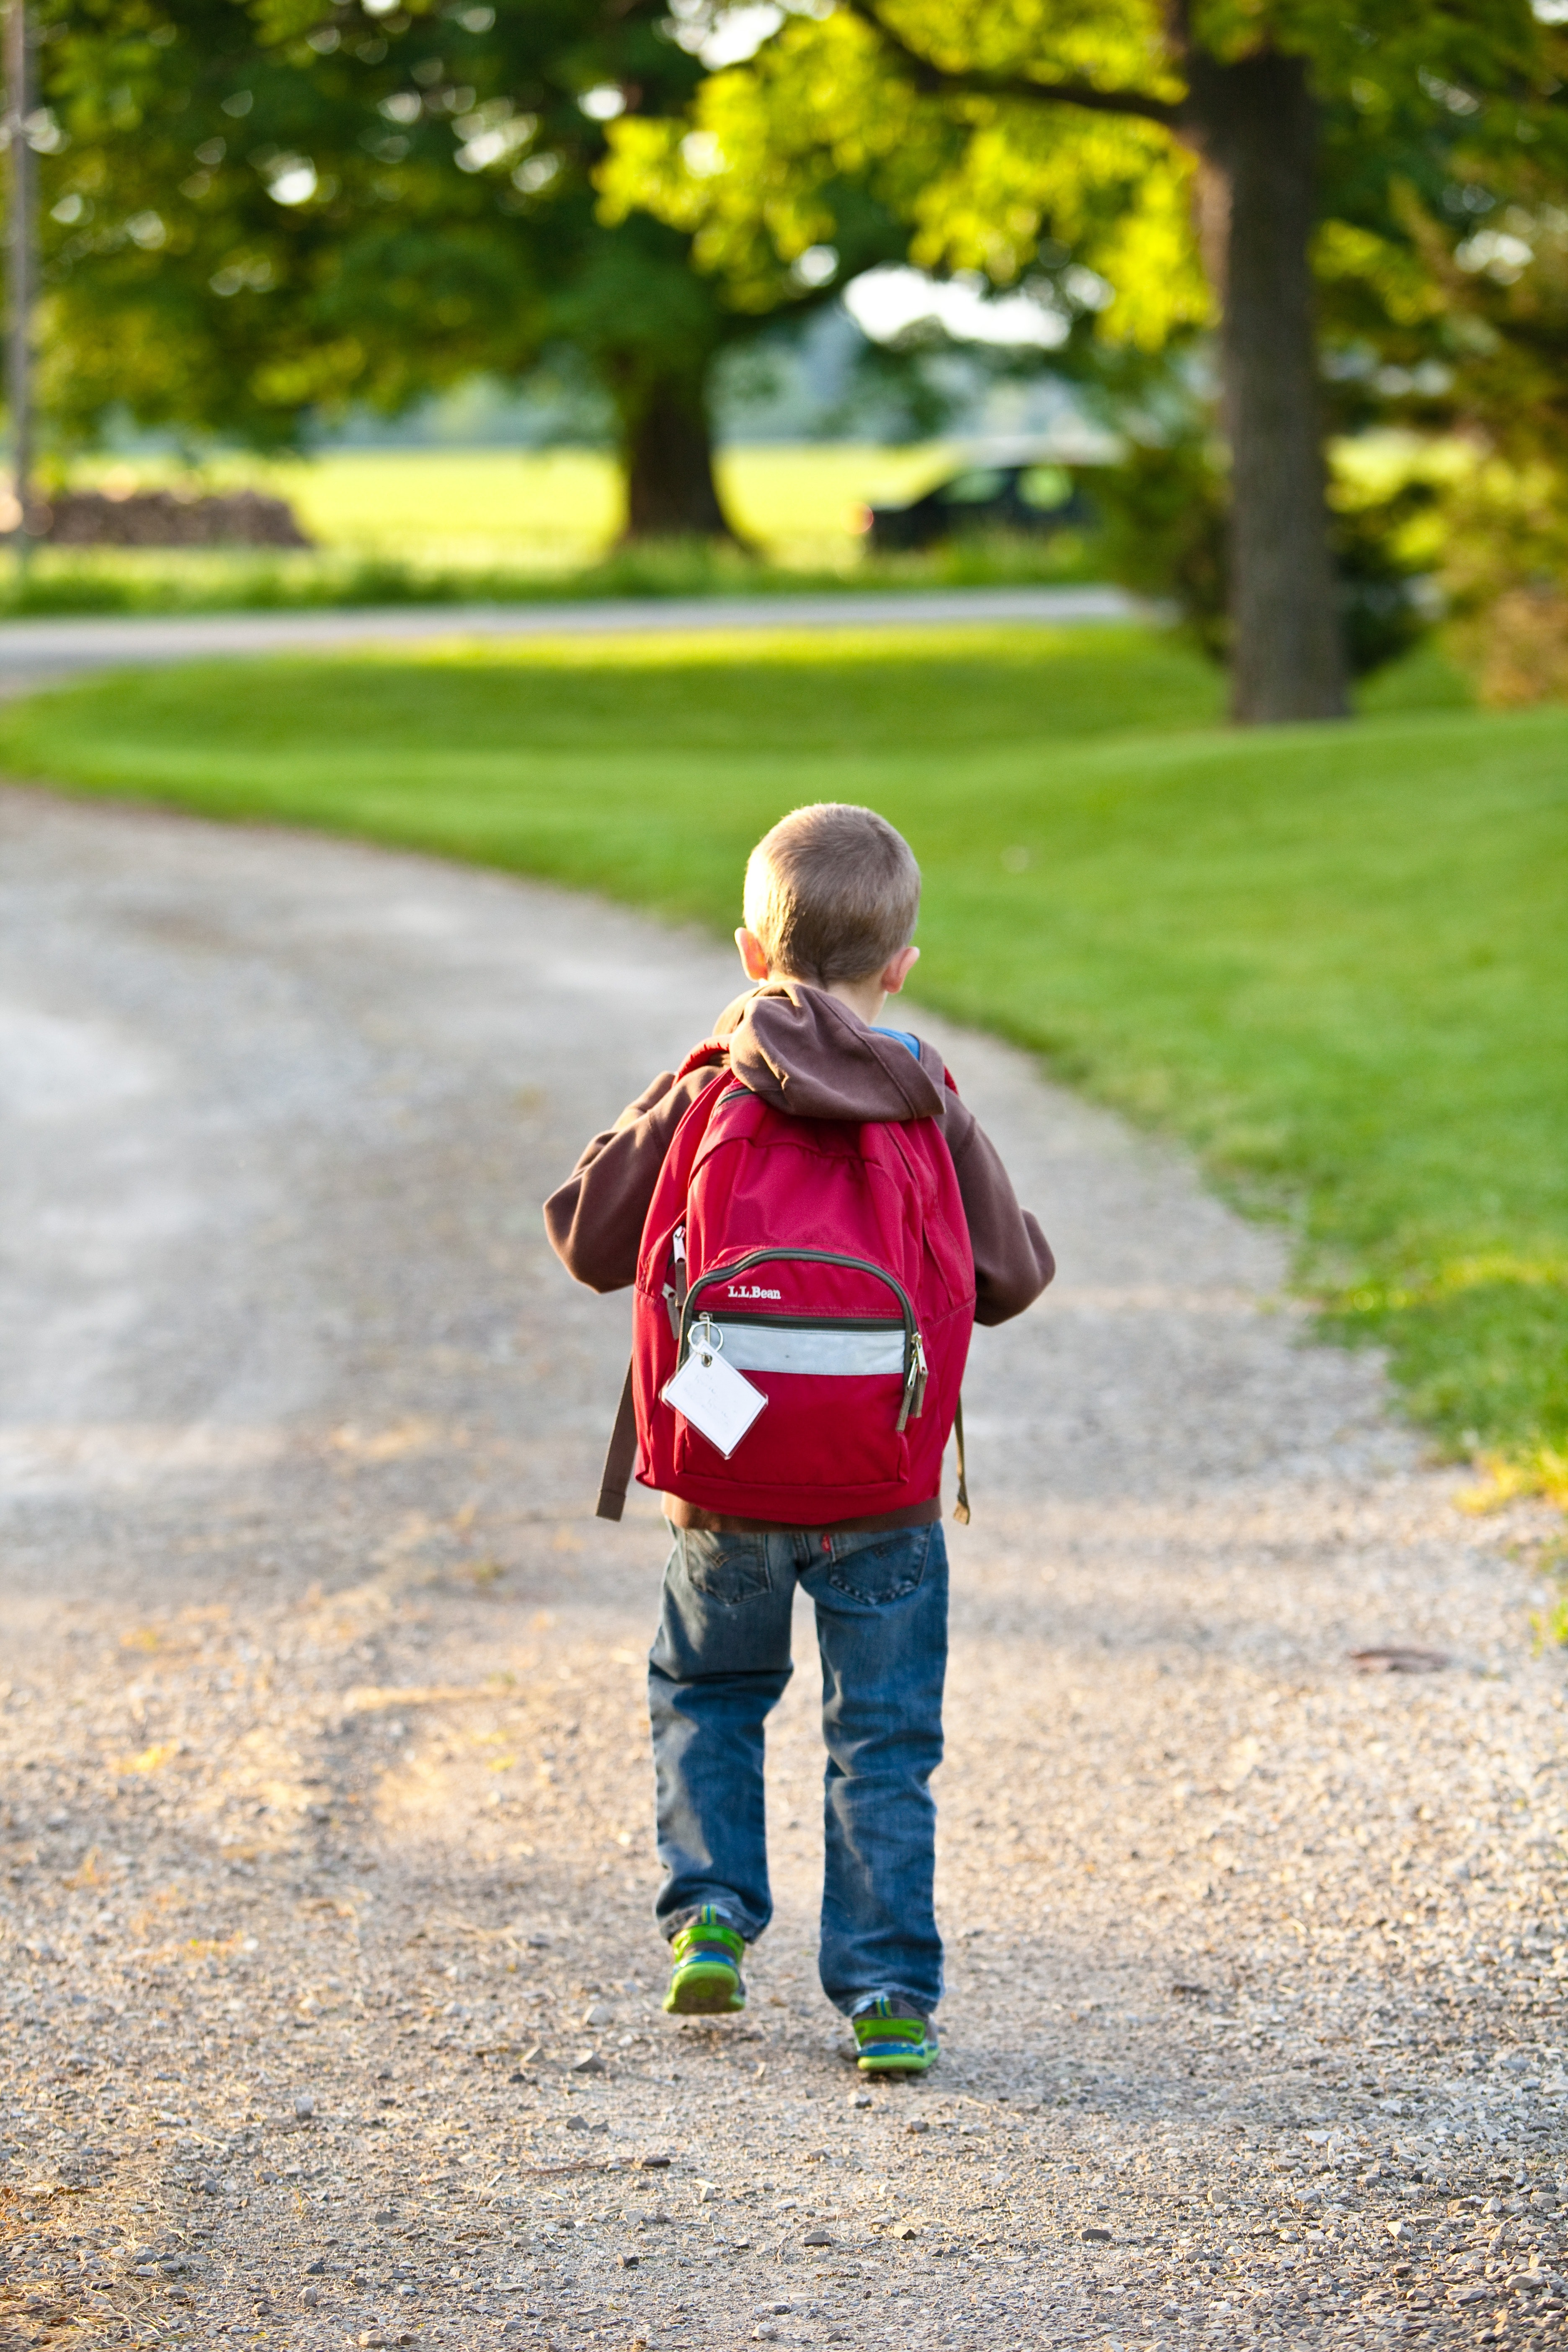 Choosing a school for your child abroad is a daunting task